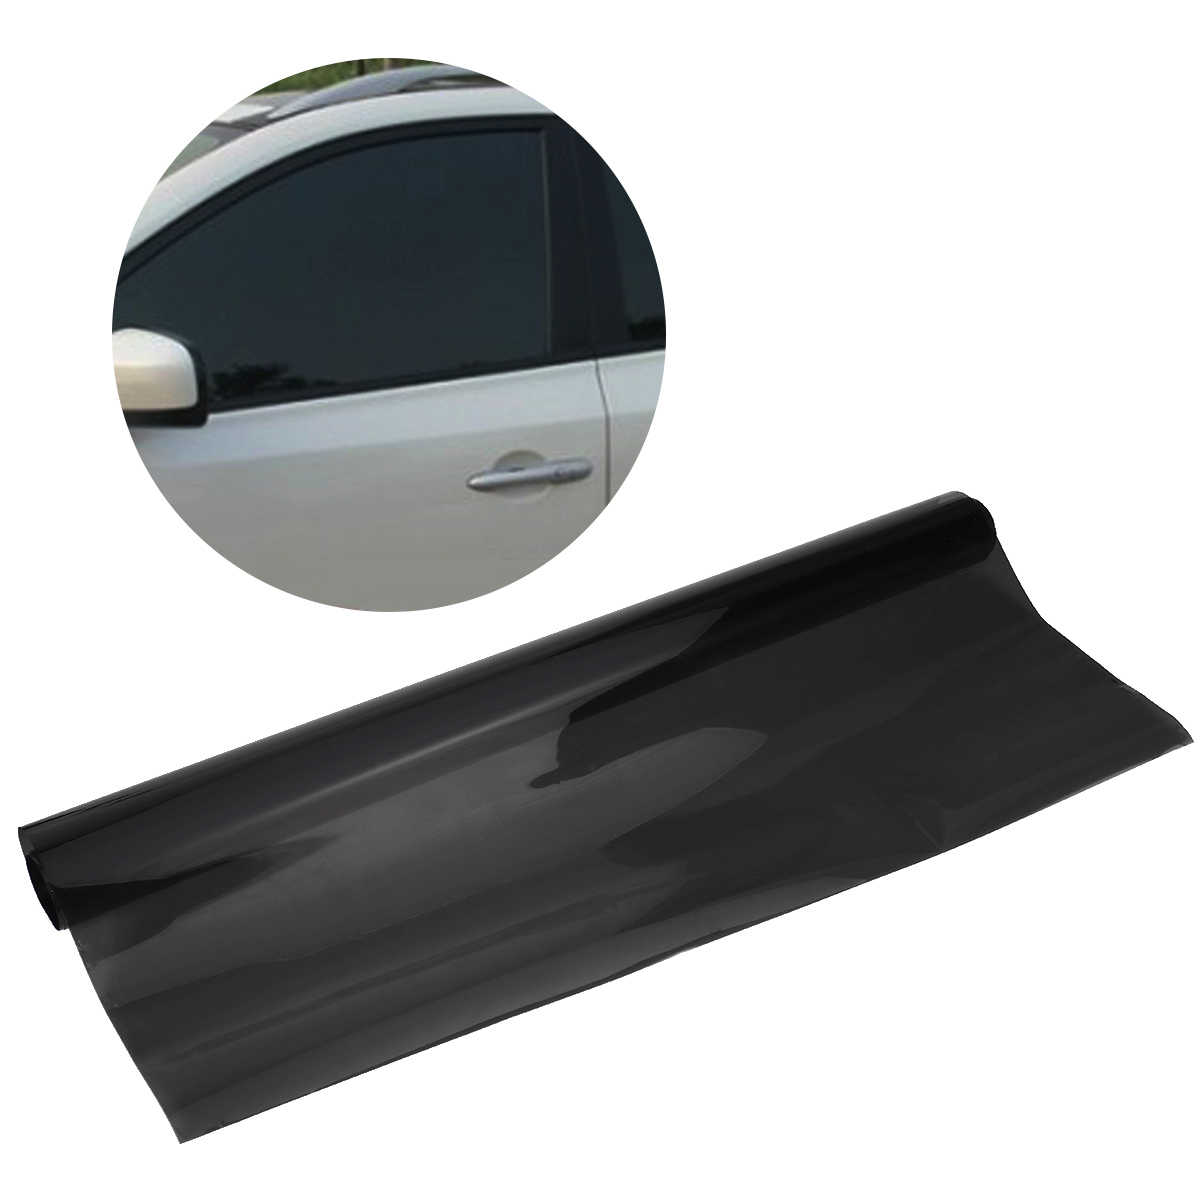 75cm × 6M Car Van Window Tint Film Universal Fit For Privacy & Sun Glare Heat Reduction Sun Visor Protector Car Accessories